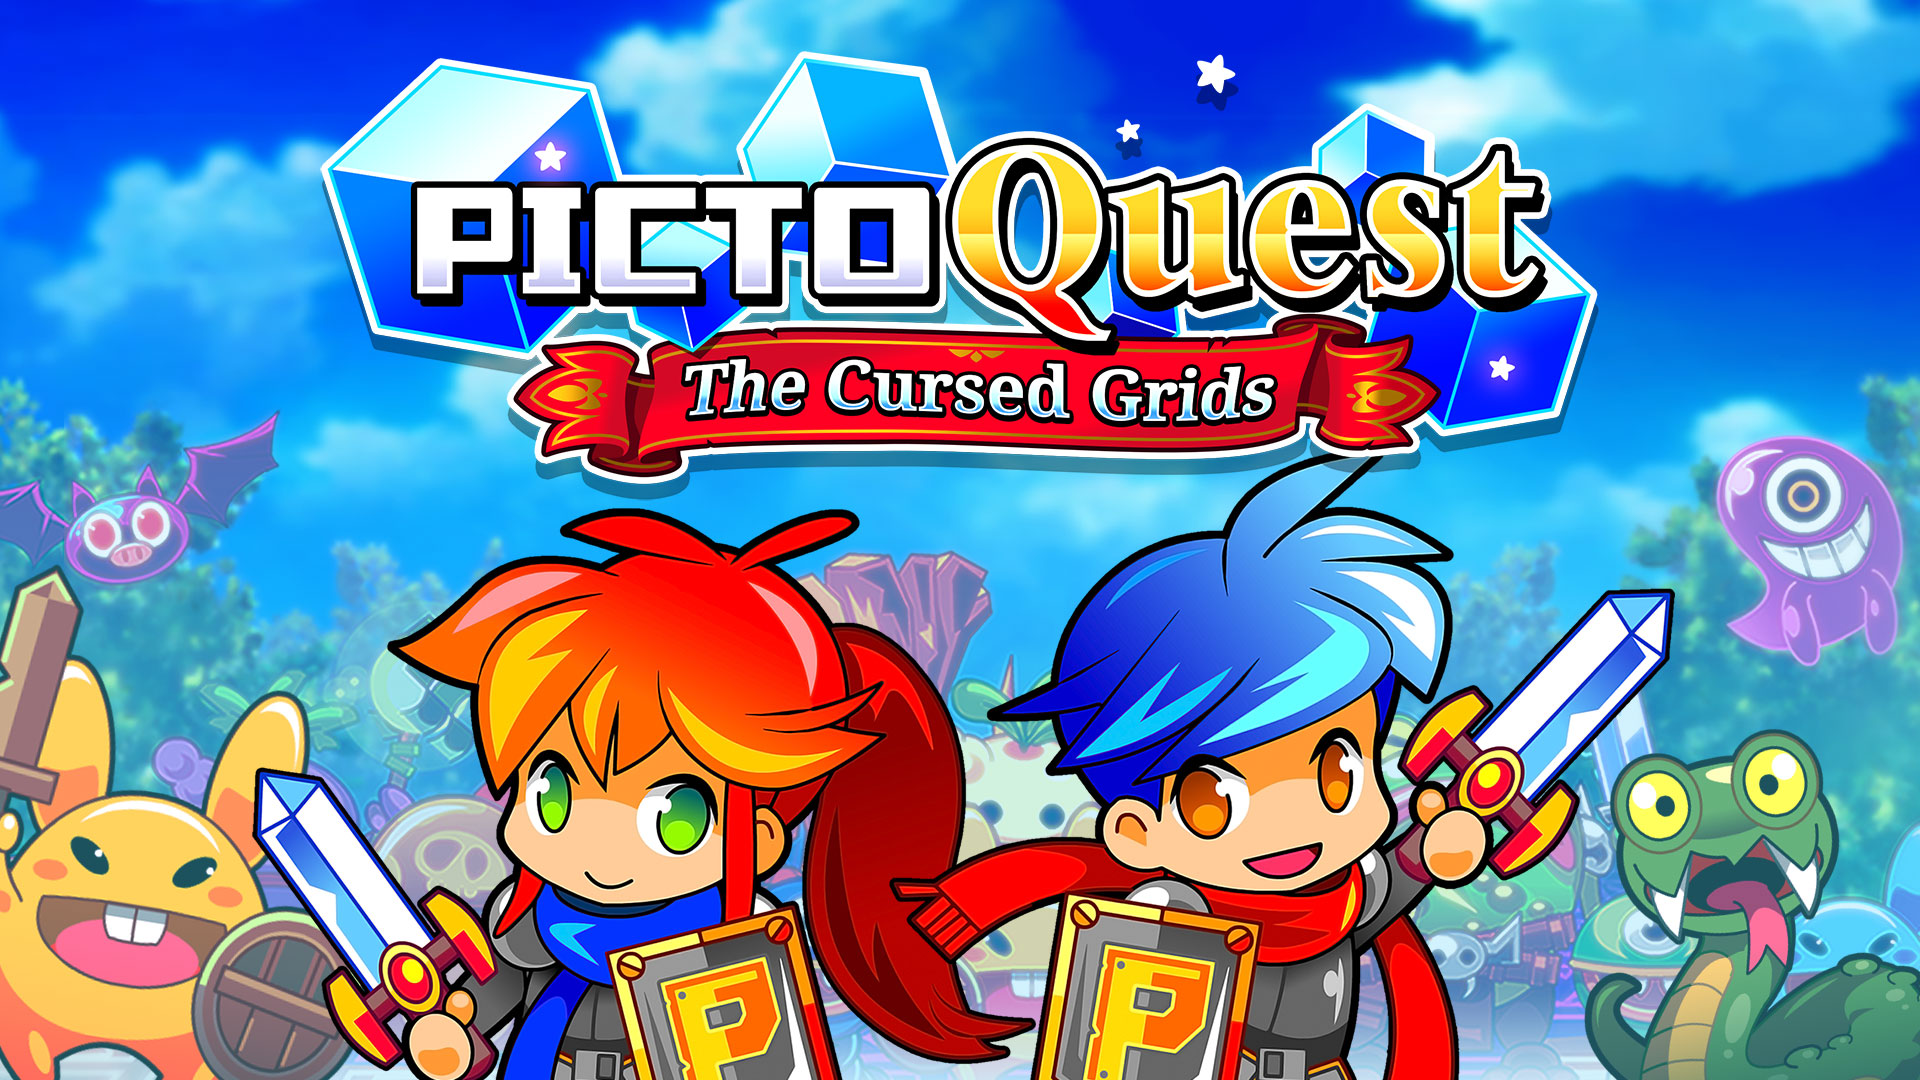 New games on Twitch Prime: Mad Tracks and PictoQuest